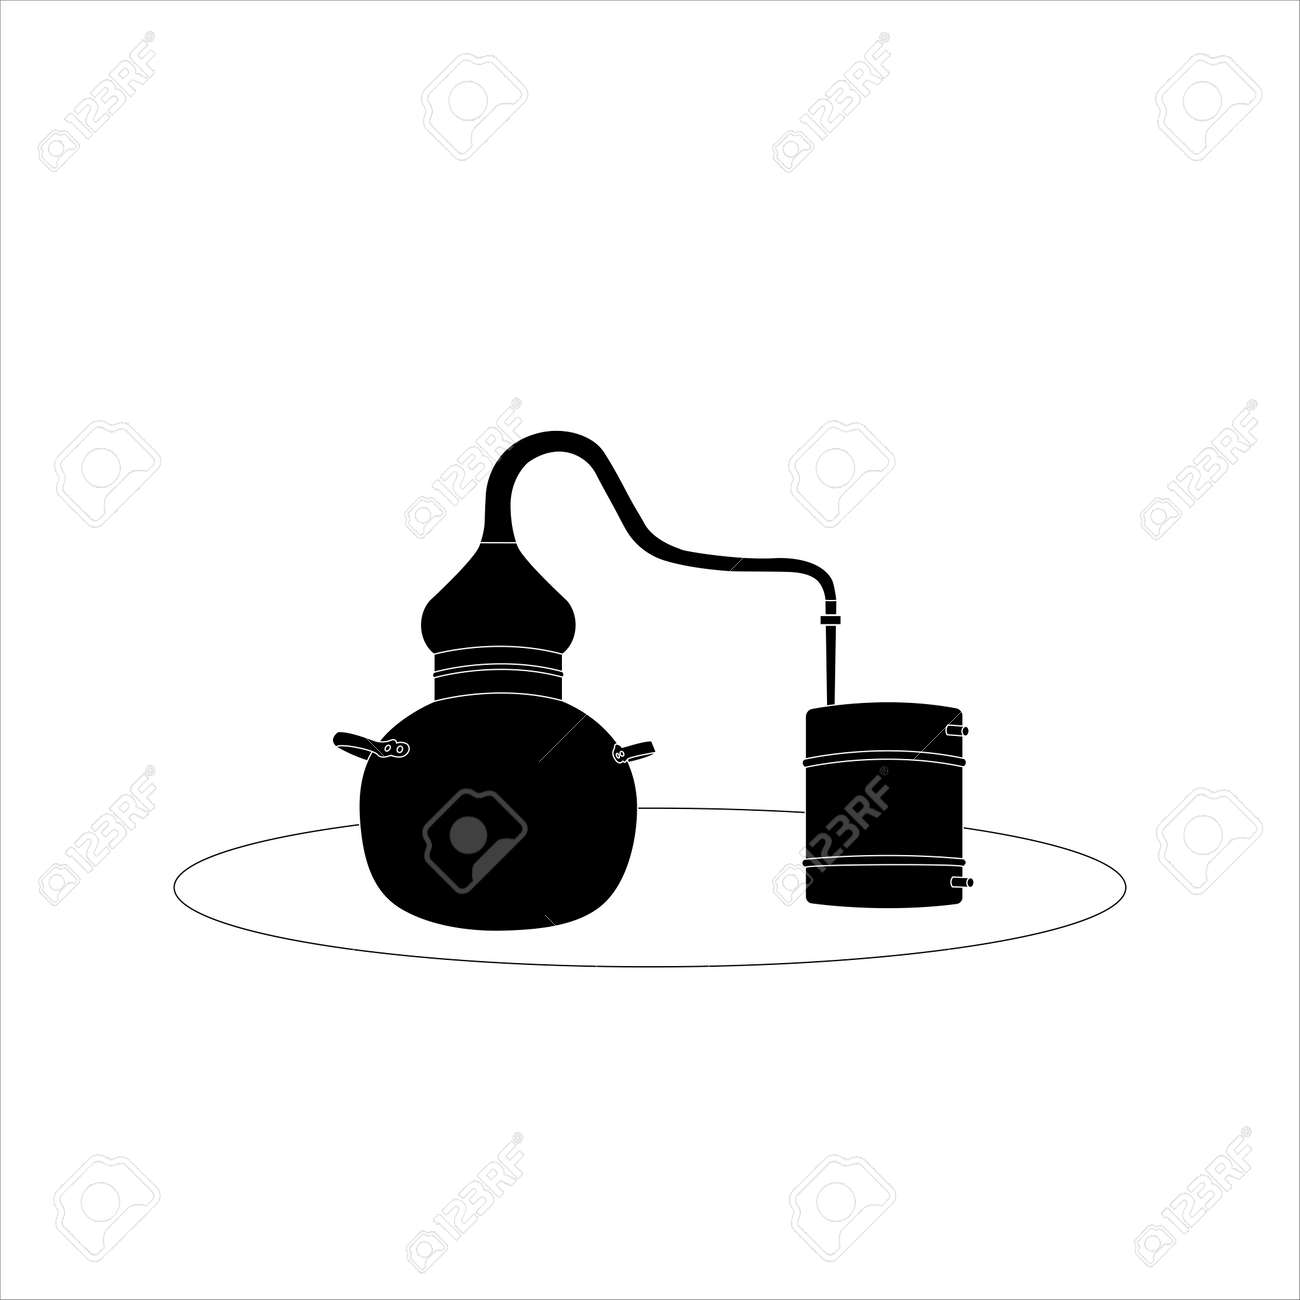 Alambic Copper Icon. Distillation apparatus used for the production of alcohol, essential oils and moonshine. vector illustration. - 171745746